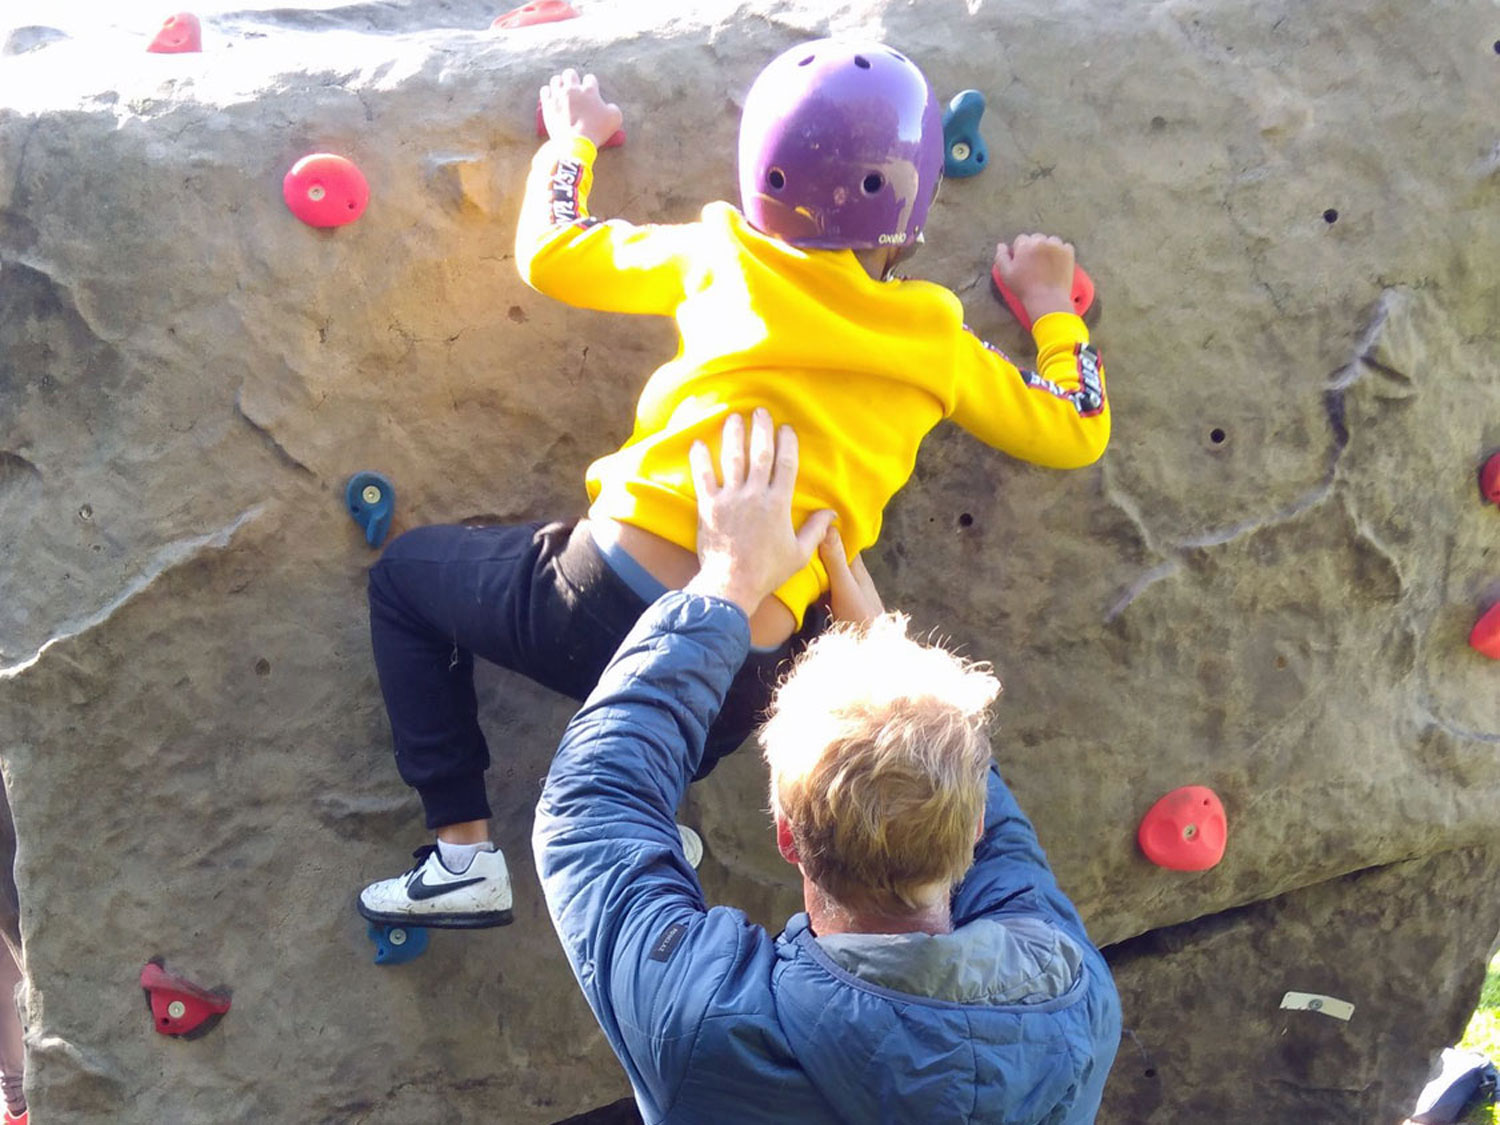 The instructor supports a small child who is climbing the outdoor boulder